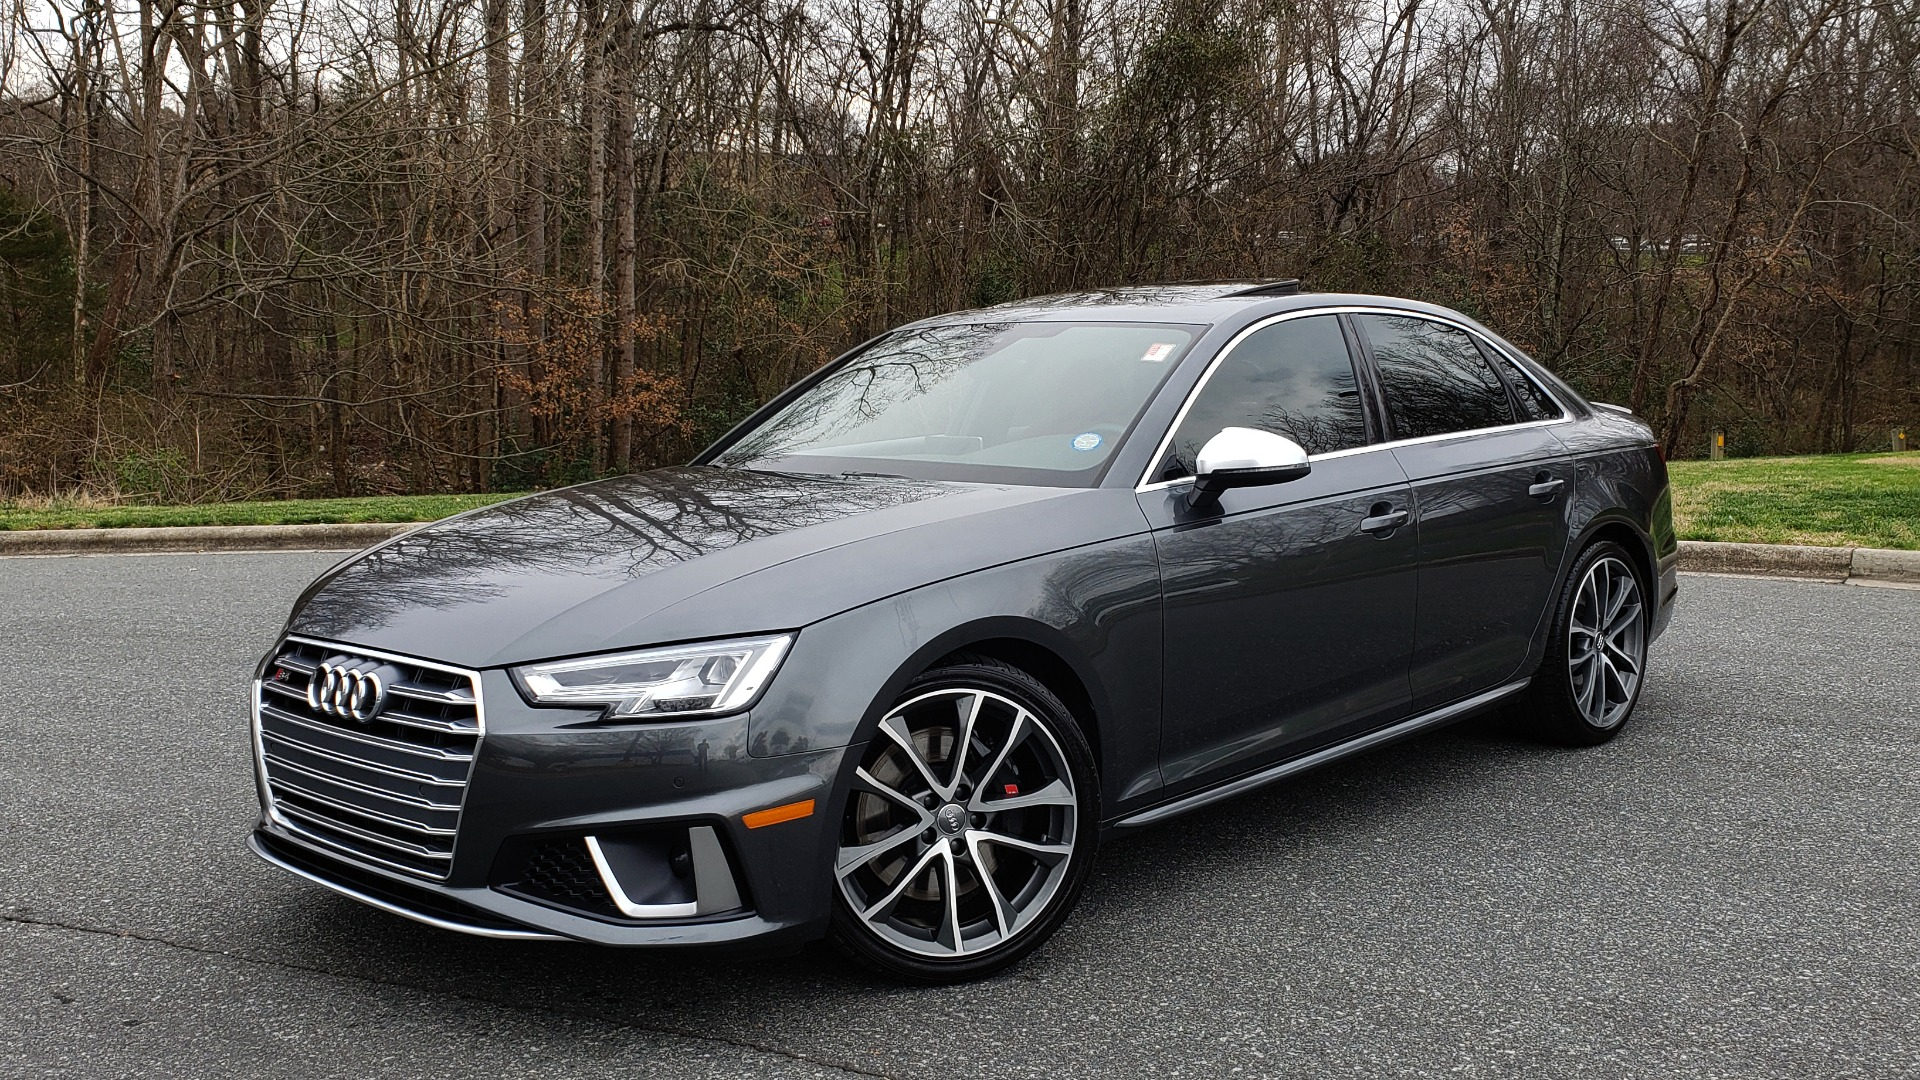 Used 2019 Audi S4 PREMIUM PLUS / AWD / NAV / SUNROOF / B&O SOUND / REARVIEW for sale Sold at Formula Imports in Charlotte NC 28227 1